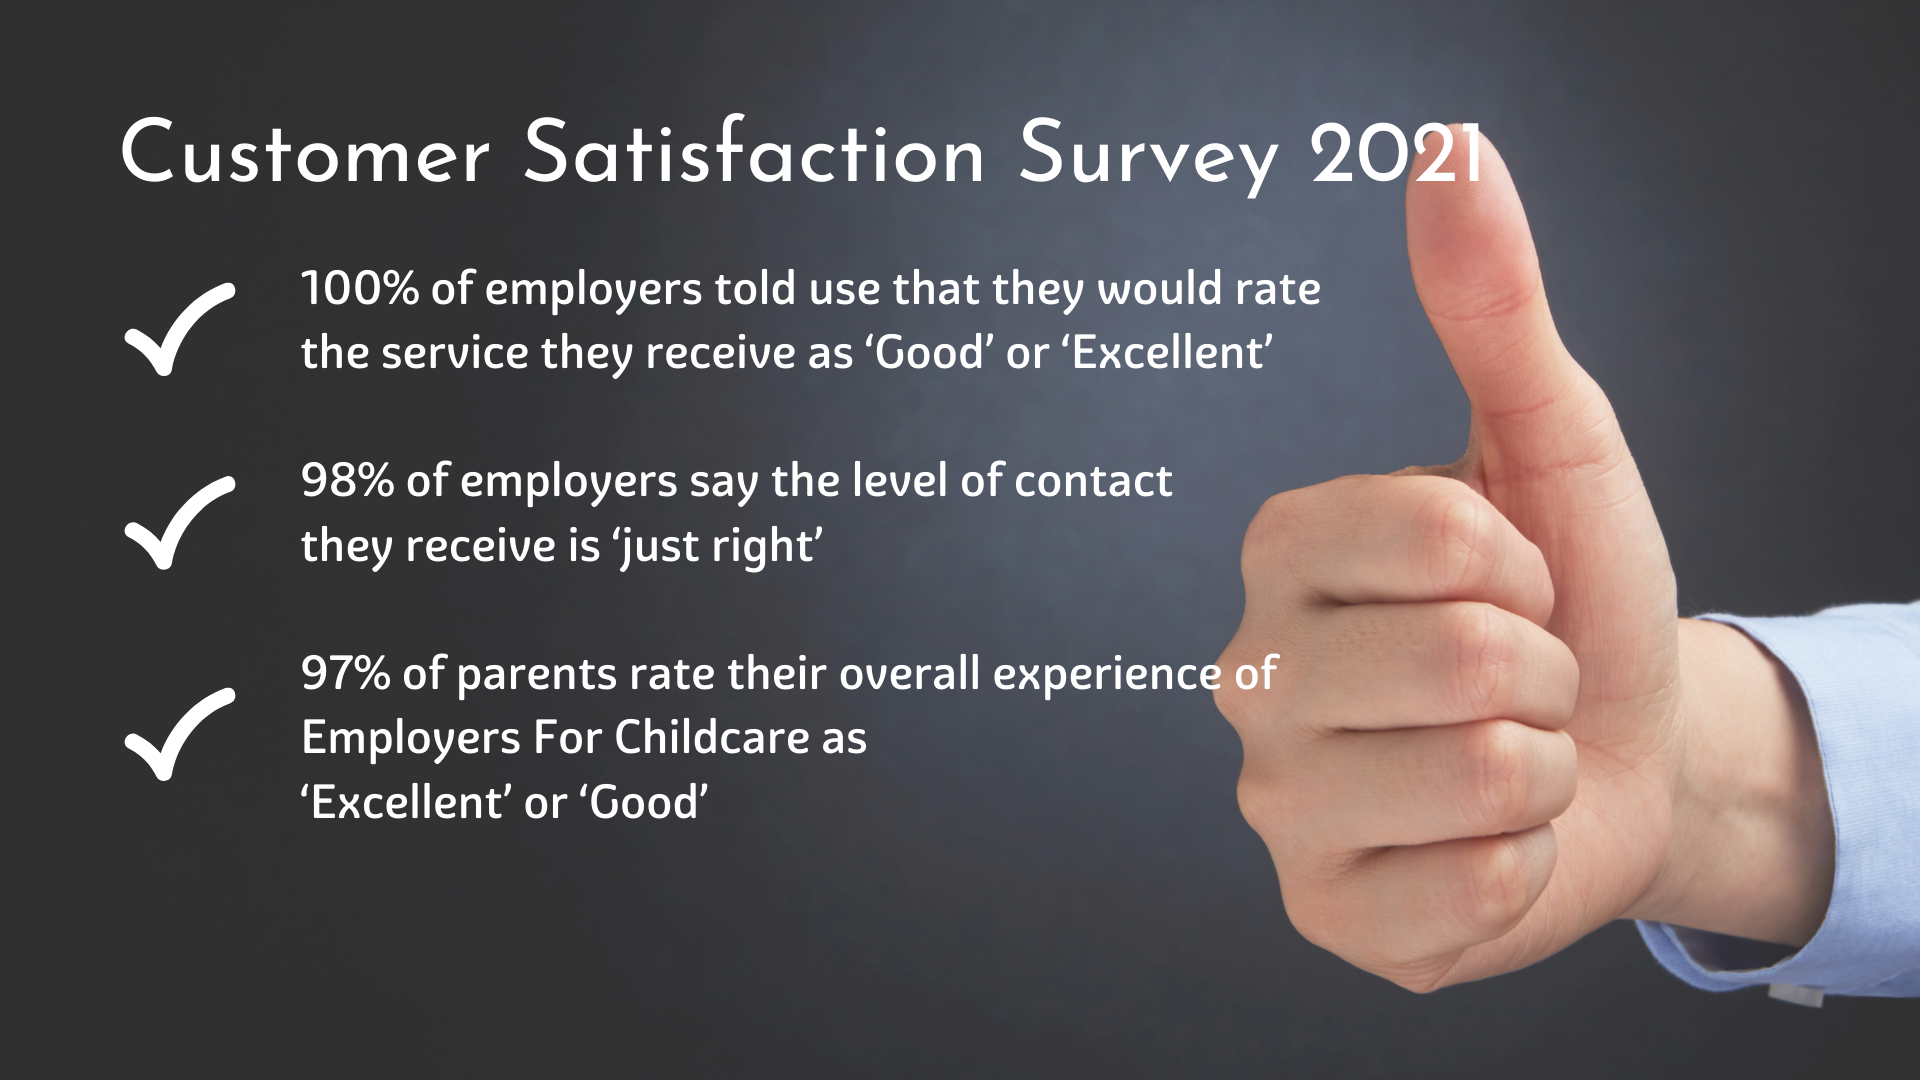 Employers For Childcare celebrates high levels of customer satisfaction